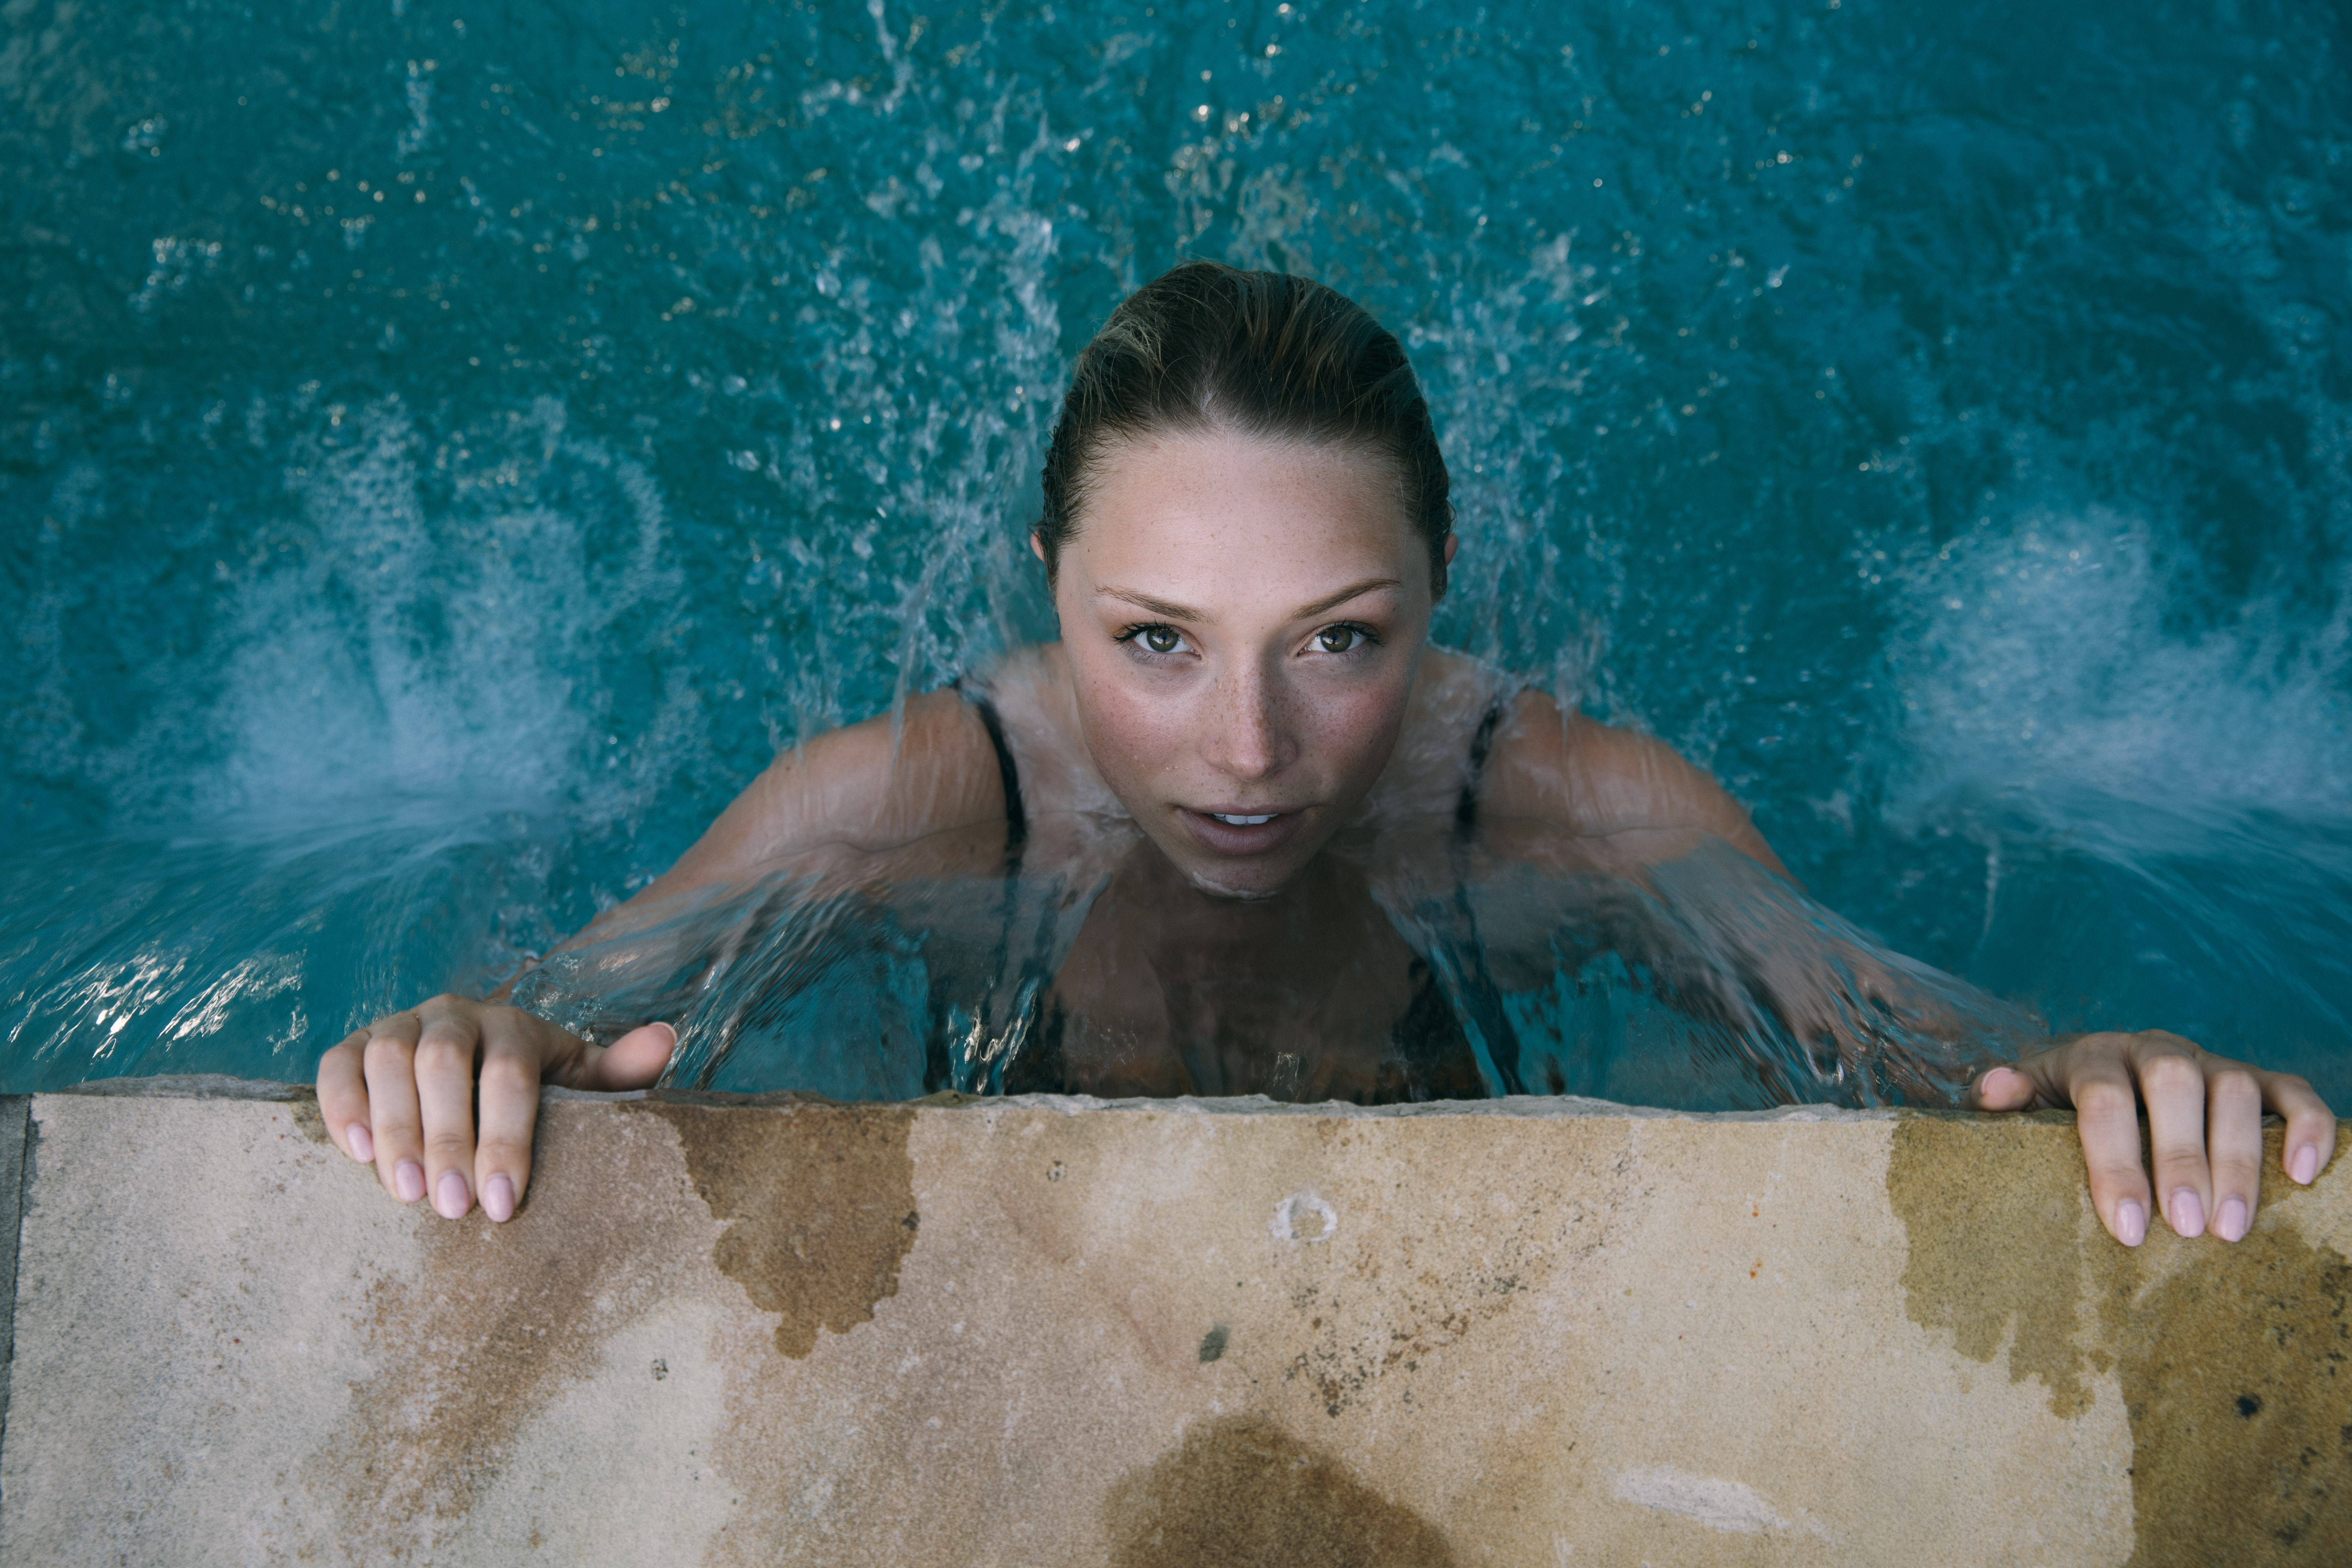 high-angle photo of woman in body of water holding on to brown concrete pavement